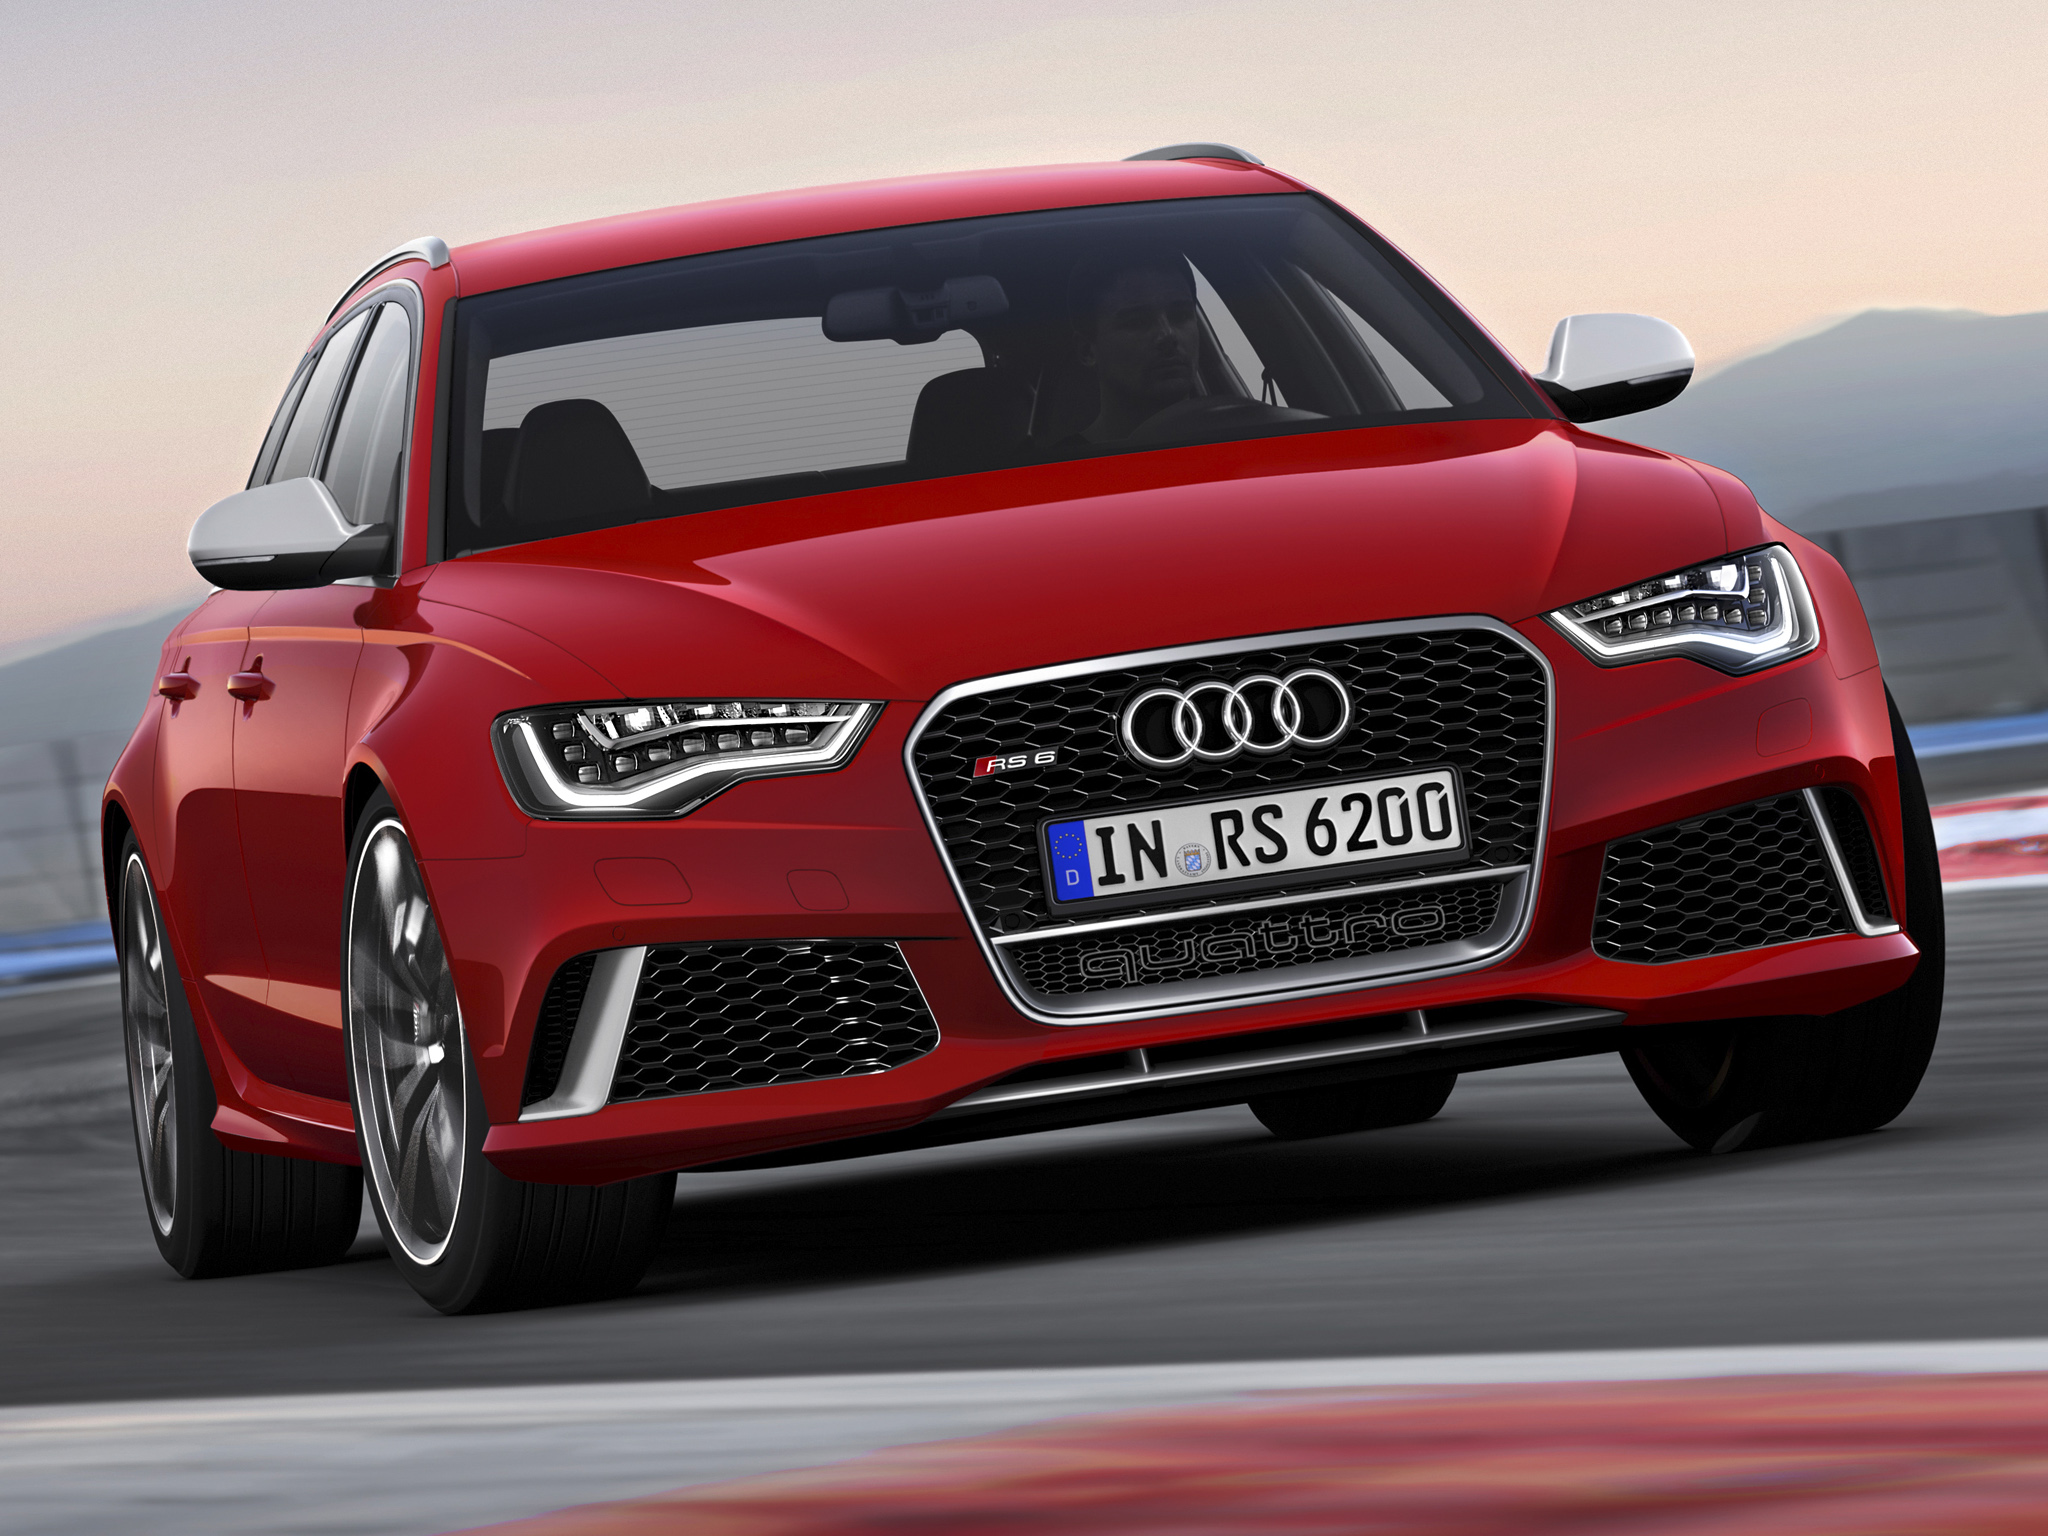 Ausmotive Com 187 2013 Audi Rs6 Avant Gets Unexpected Unveiling